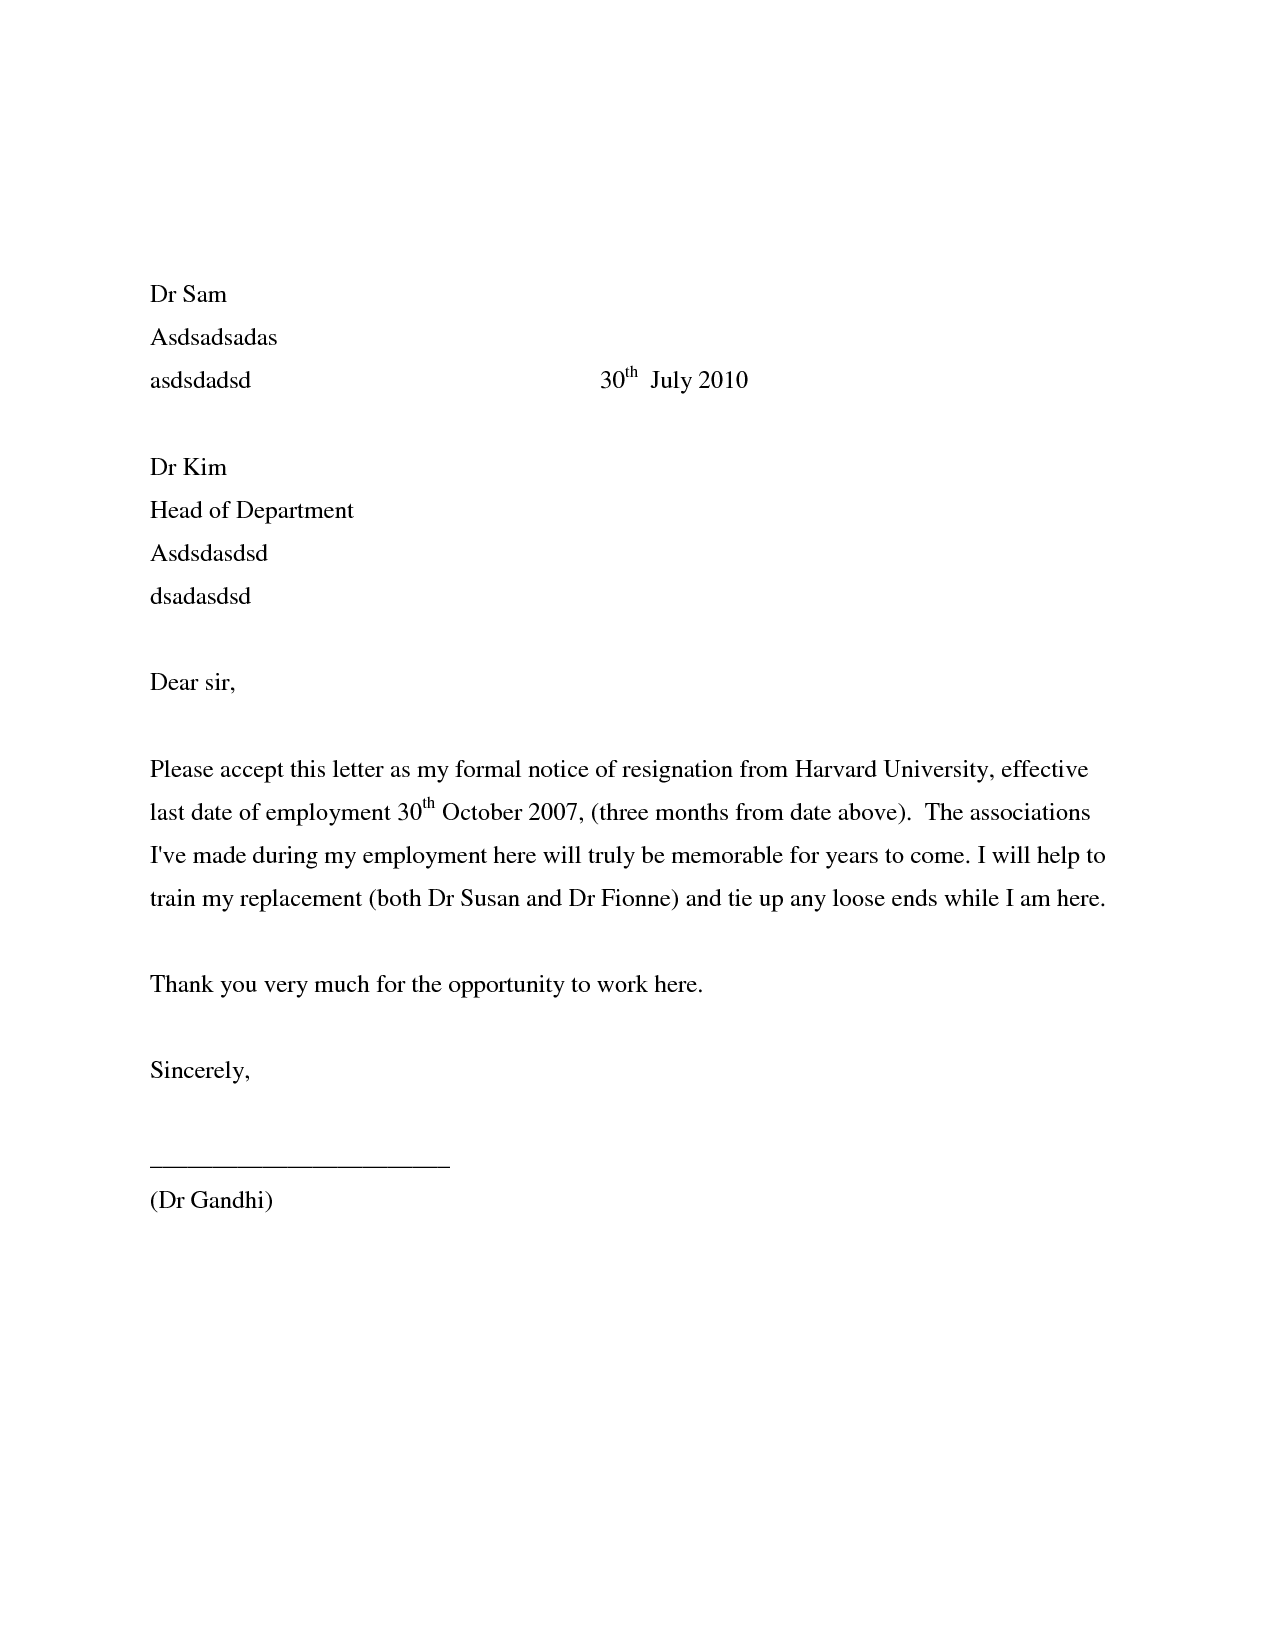 Sample Good Professional Resignation Letters A Good Sample Opening Paragraph It Is Your Cv Its A Should Showcase